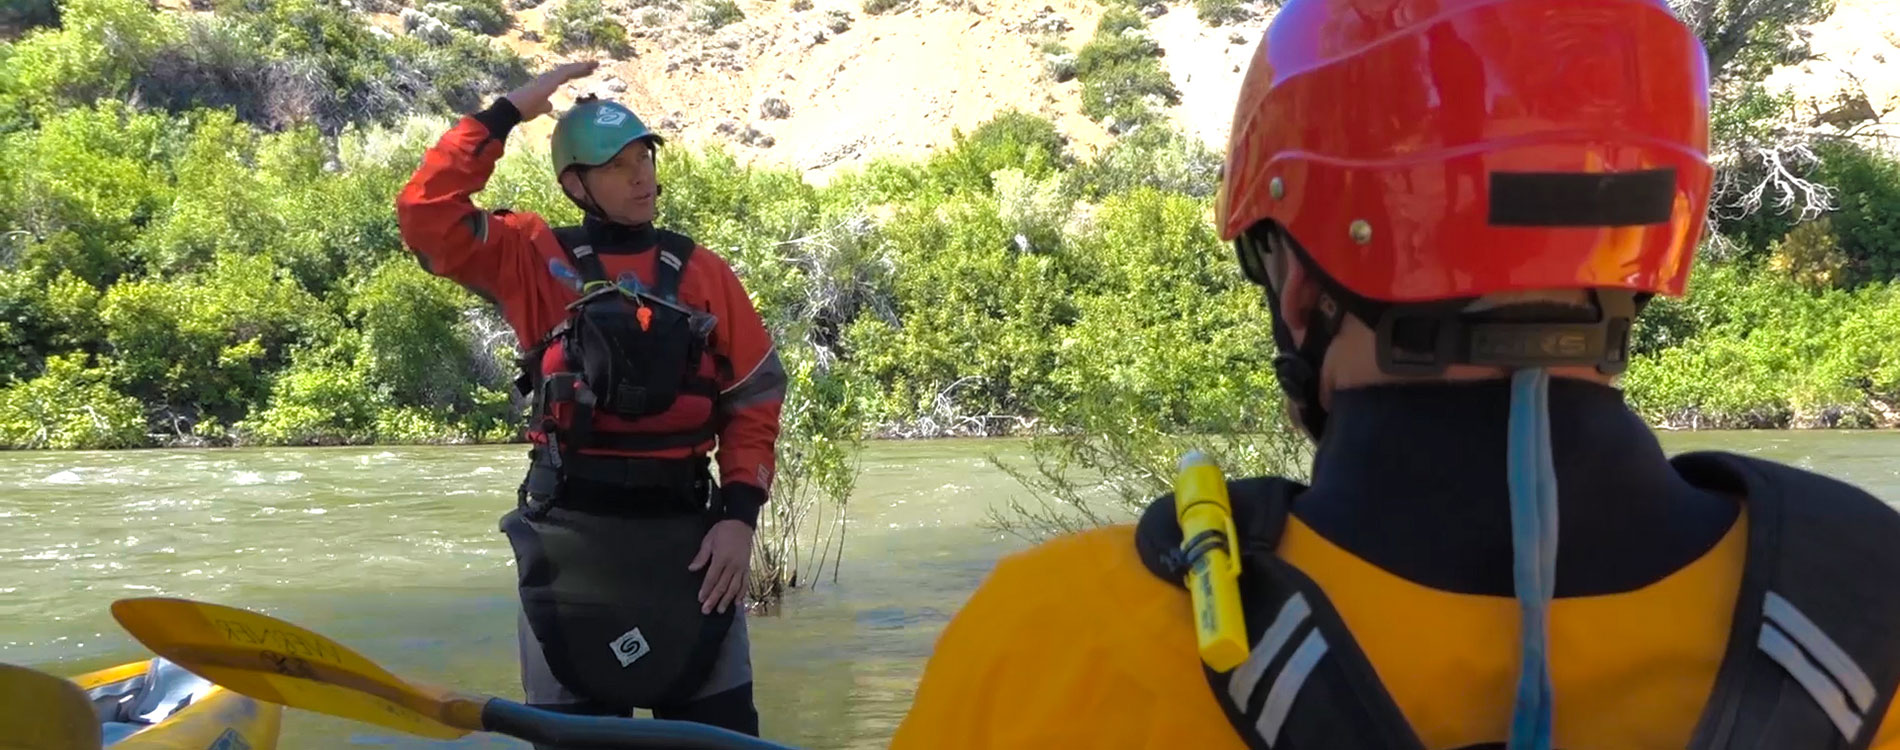 Reno Fire Department doing river water rescue training